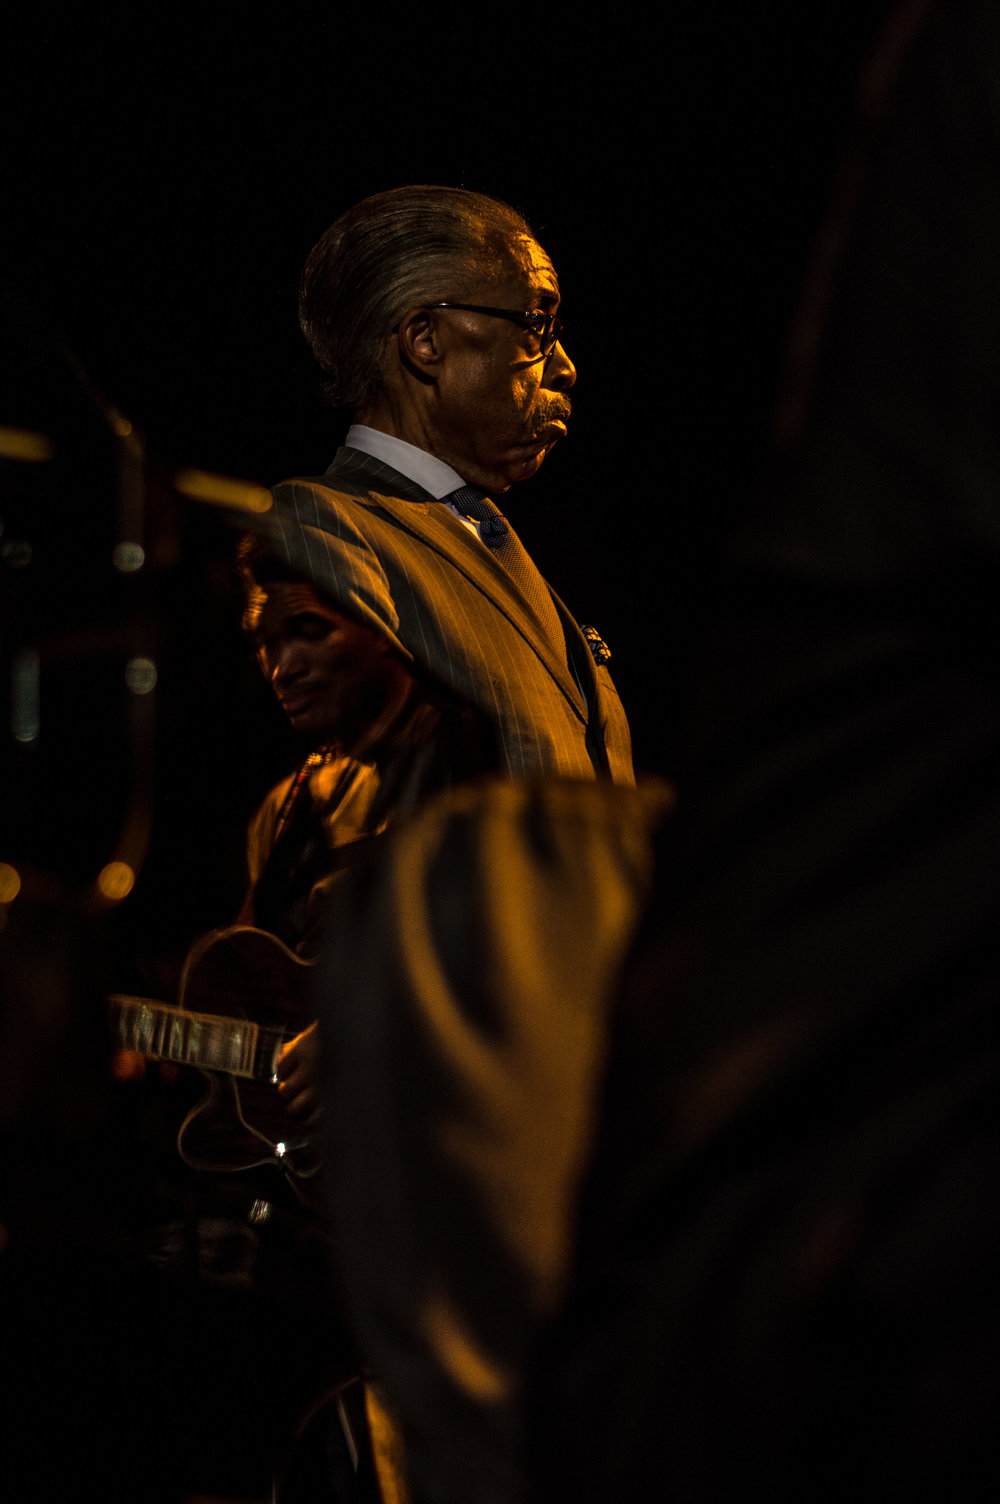 May 10, 2017. 8:02 P.M.  Al Sharpton prepares to take the stage at the Prayer and Call for Justice Rally.  Downtown Tulsa.